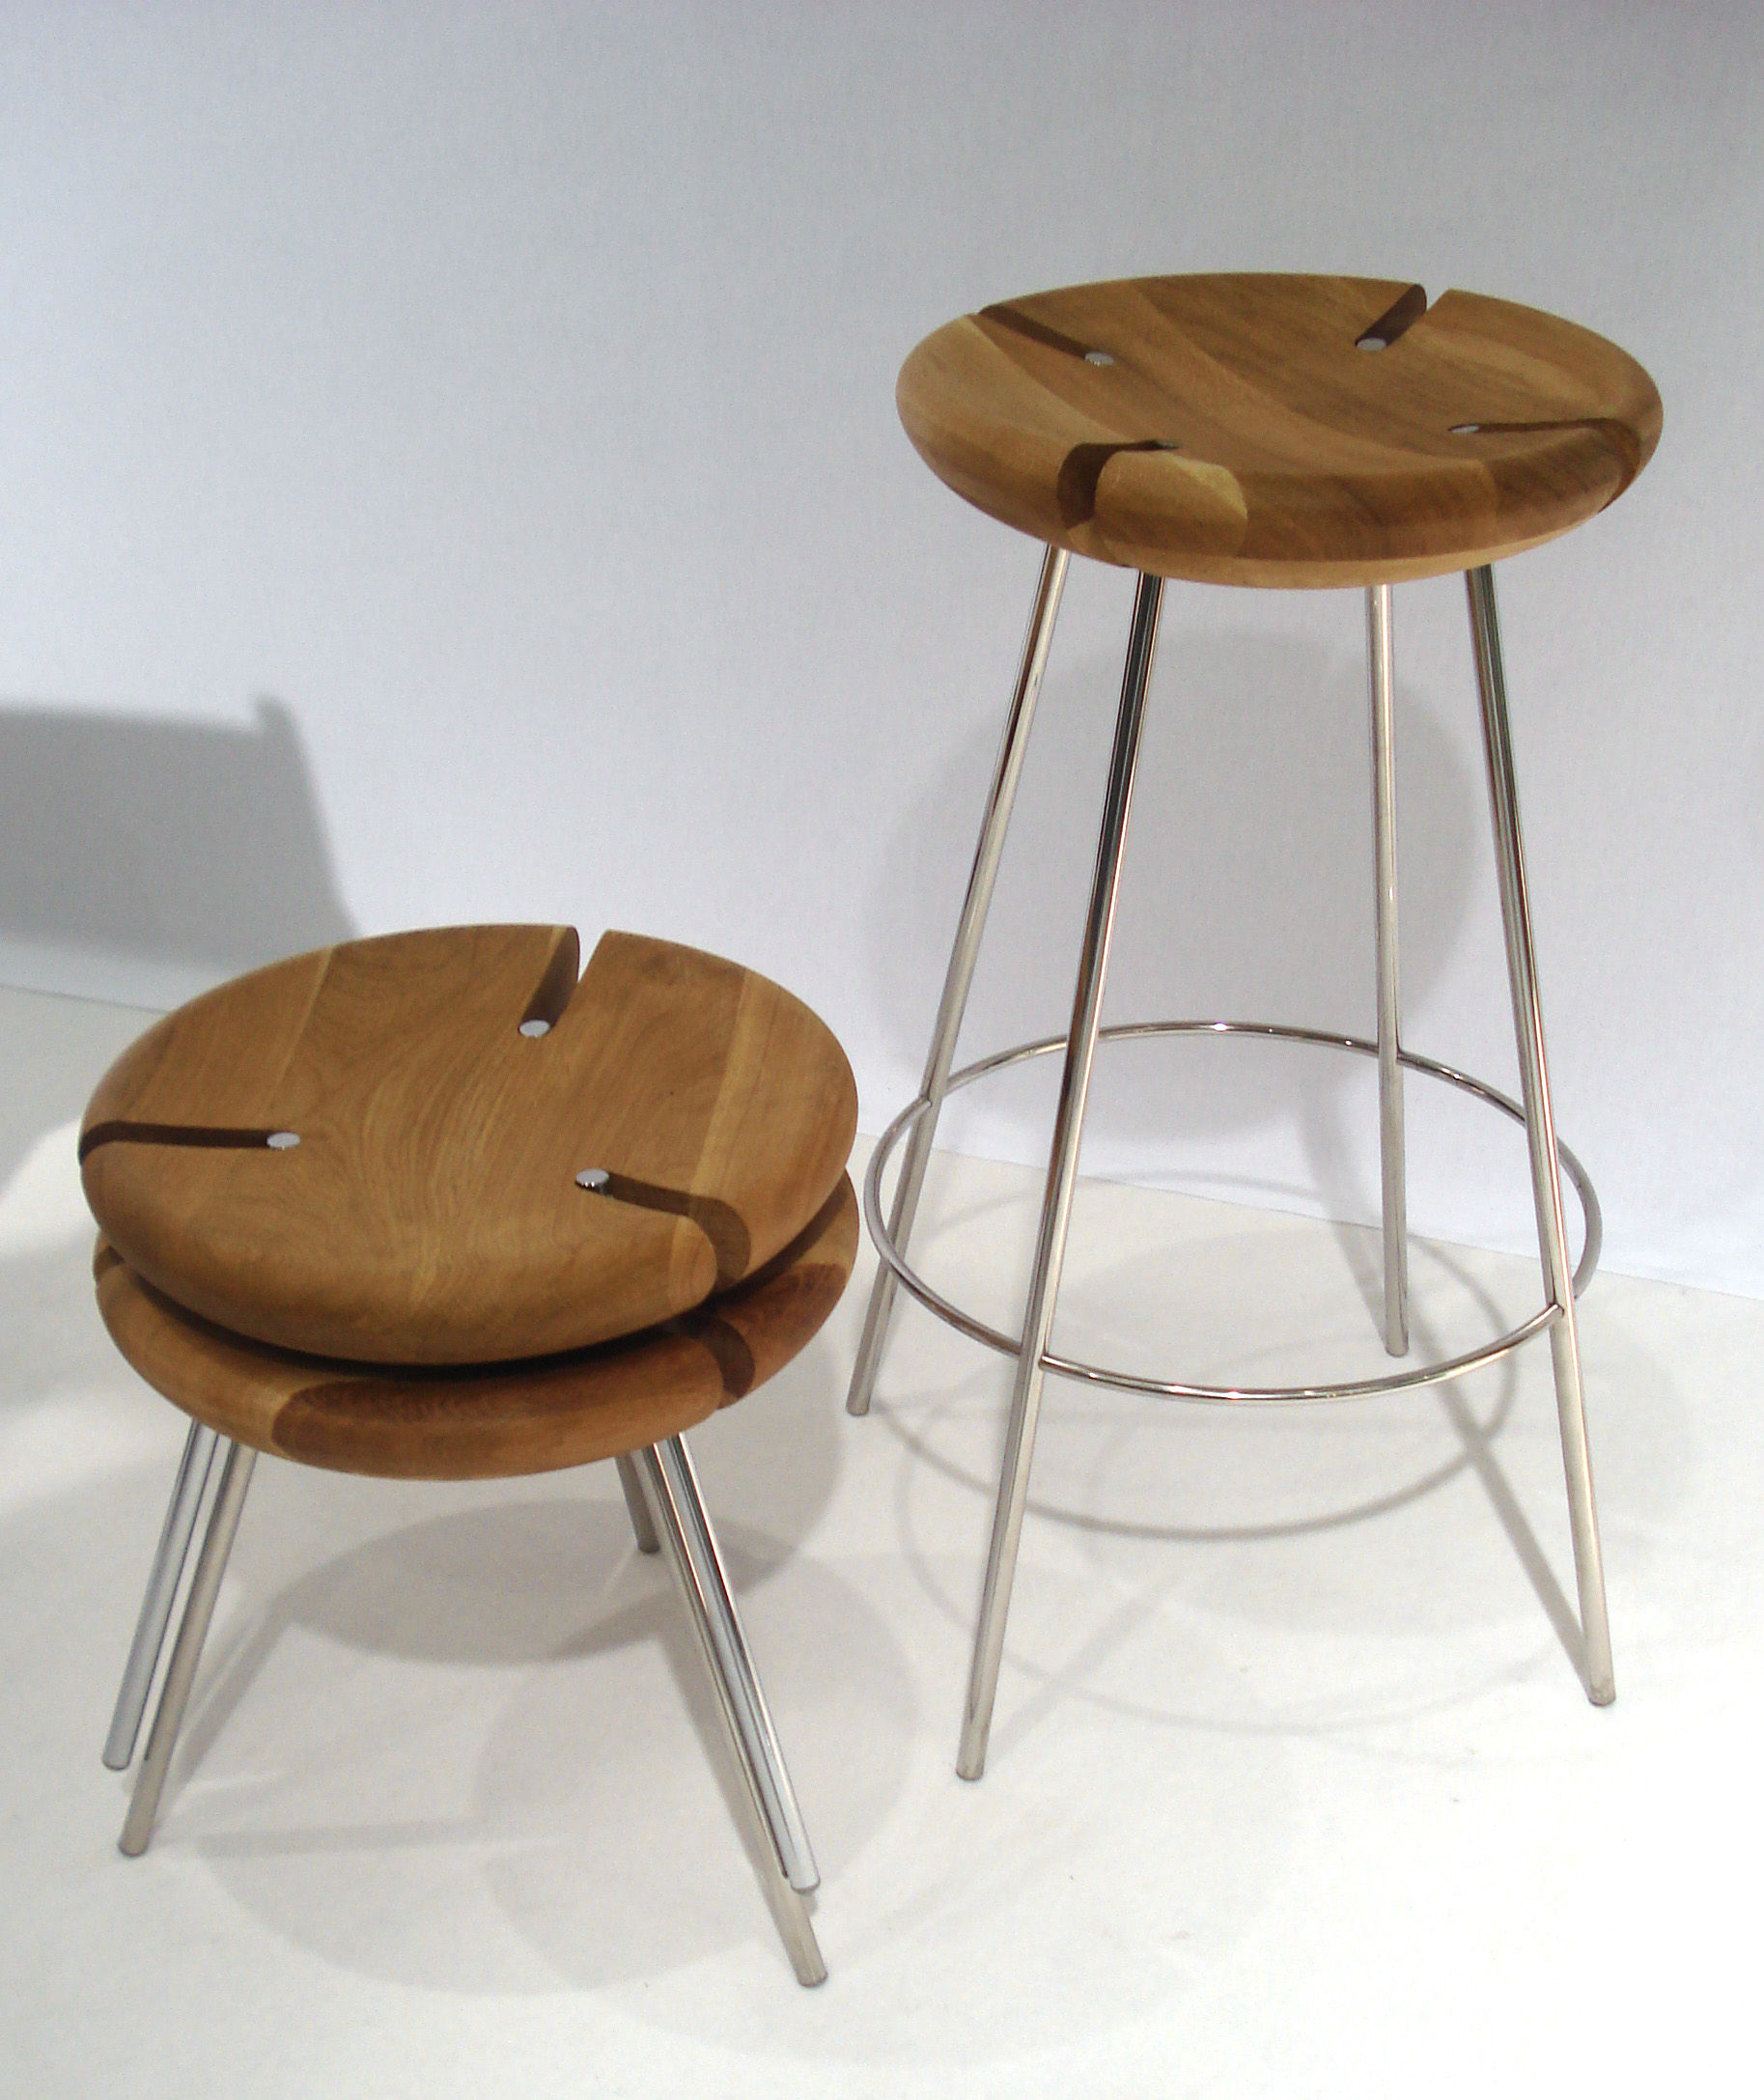 Superb img of  Bar stools > Tribo Bar stool H 76 cm Wood & metal legs by Objekto with #6D4726 color and 1827x2175 pixels